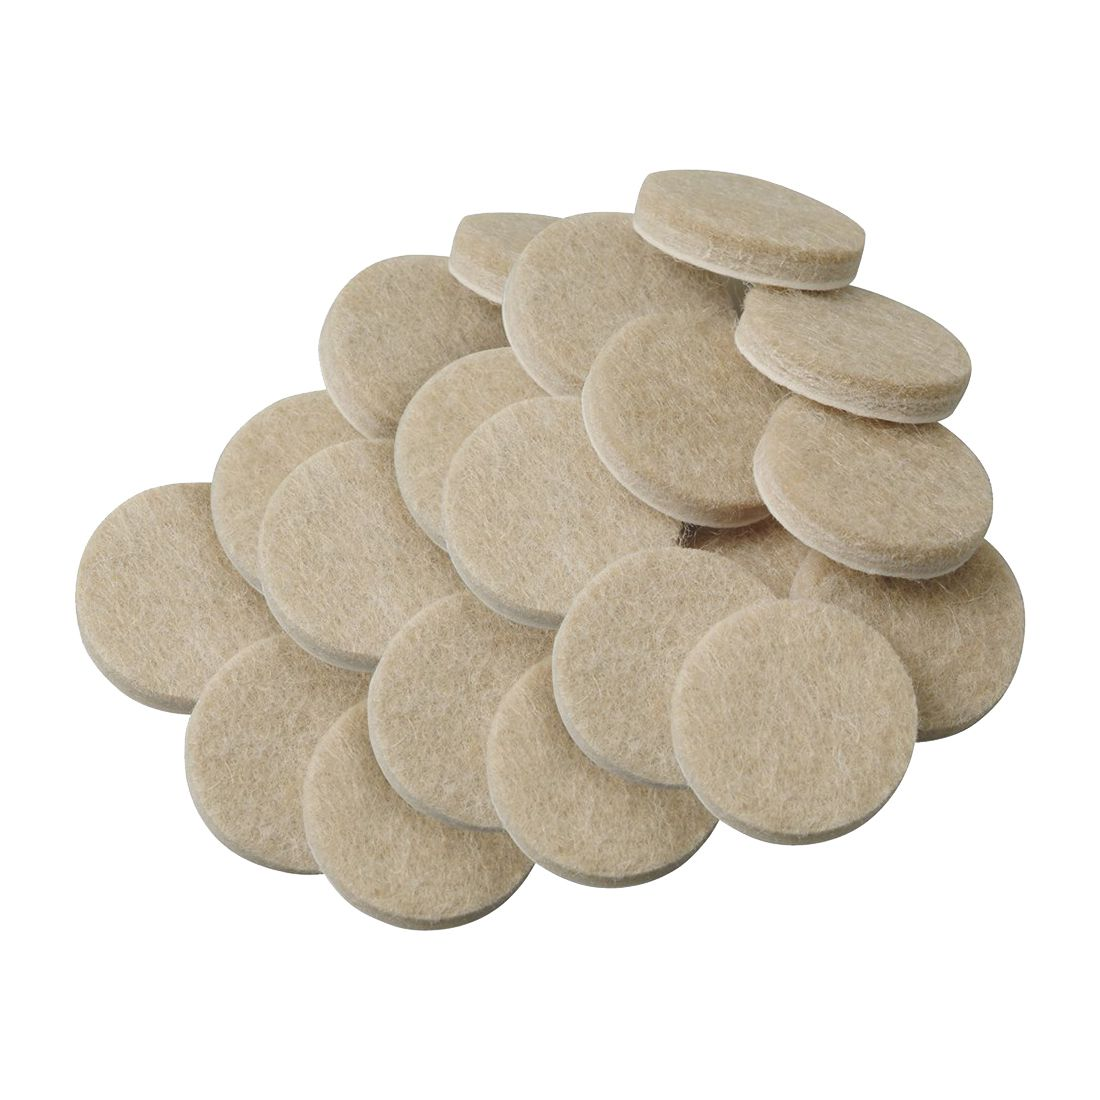 20pcs Self-Stick 3/4 inch Furniture Felt Pads for Hard Surfaces - Oatmeal, Round20pcs Self-Stick 3/4 inch Furniture Felt Pads for Hard Surfaces - Oatmeal, Round